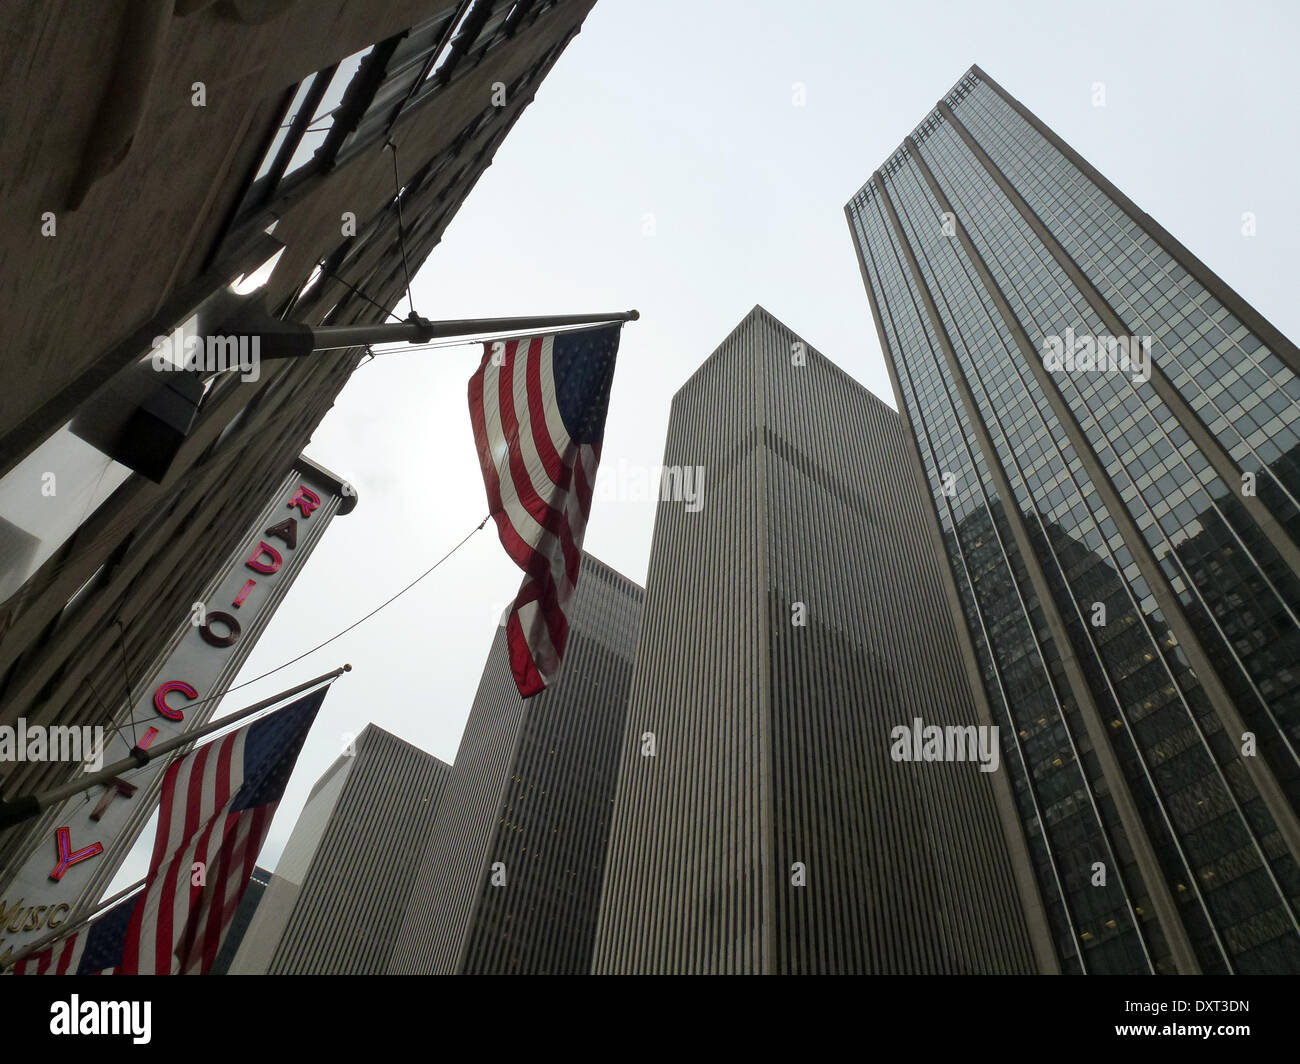 (FILE) - An archive picture, dated 18 August 2014, shows a view of Radio City Music Hall (L) and a skyscraper on 6th Avenue in Manhattan, Newy York, USA. The Radio City Music Hall was built in the 1920s and opened its doors for the first time in 1932. The concert venue is located between 50th und 51st Street and was constructed in the Art Deco Style with geometric ornaments which include glass, aluminium and chrome as the main components of building materials. Photo: Alexandra Schuler - Stock Image